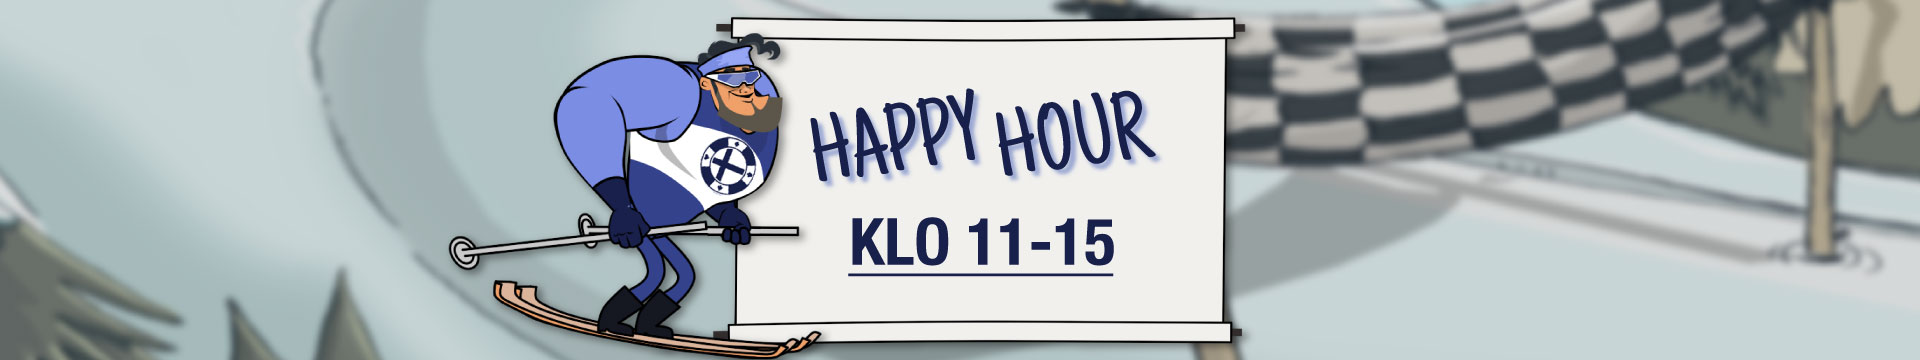 Promotion - Happy Hour February